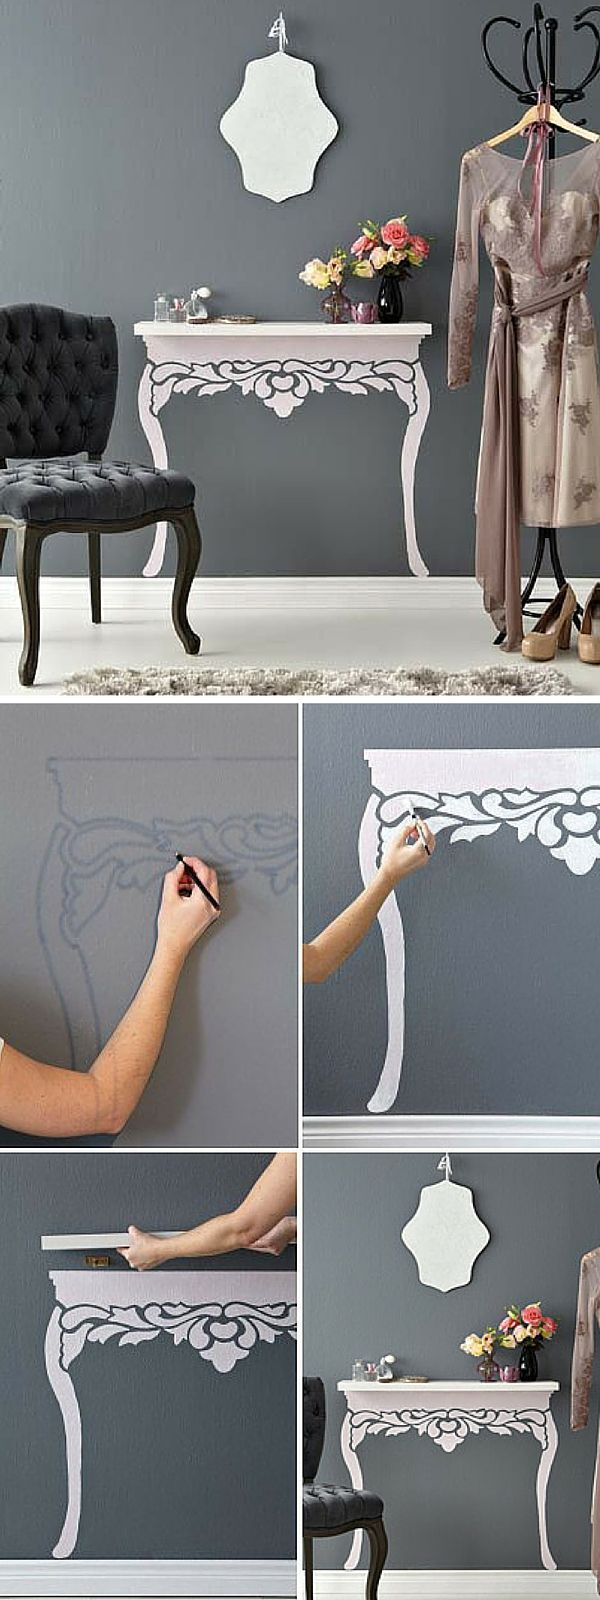 diy projects to make your home look classy wall art crafts